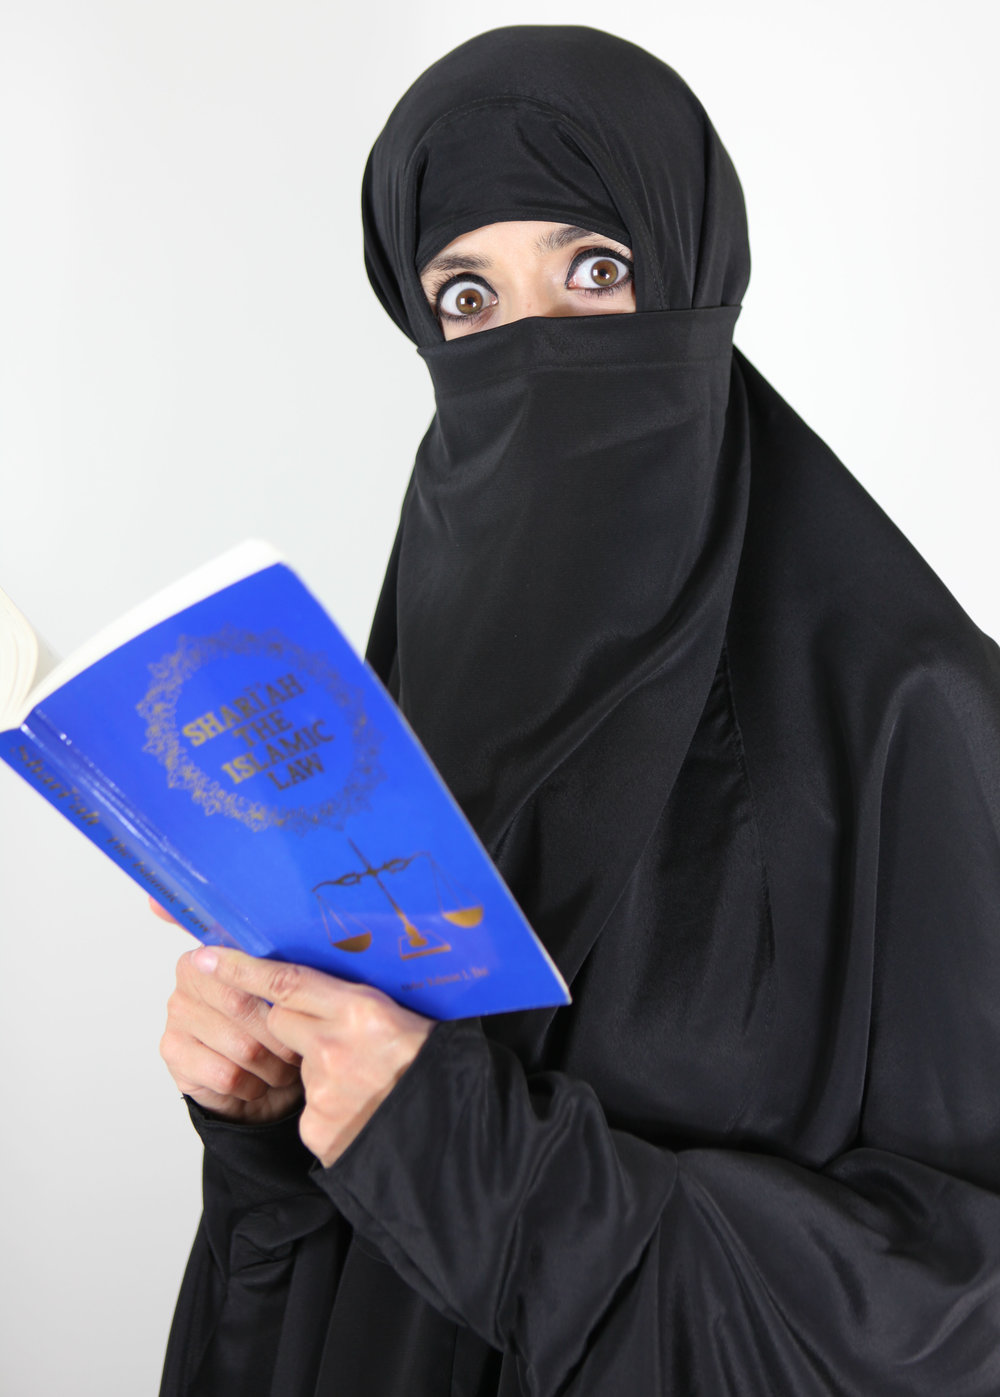 Sarah Maple, Sharia Law The Third